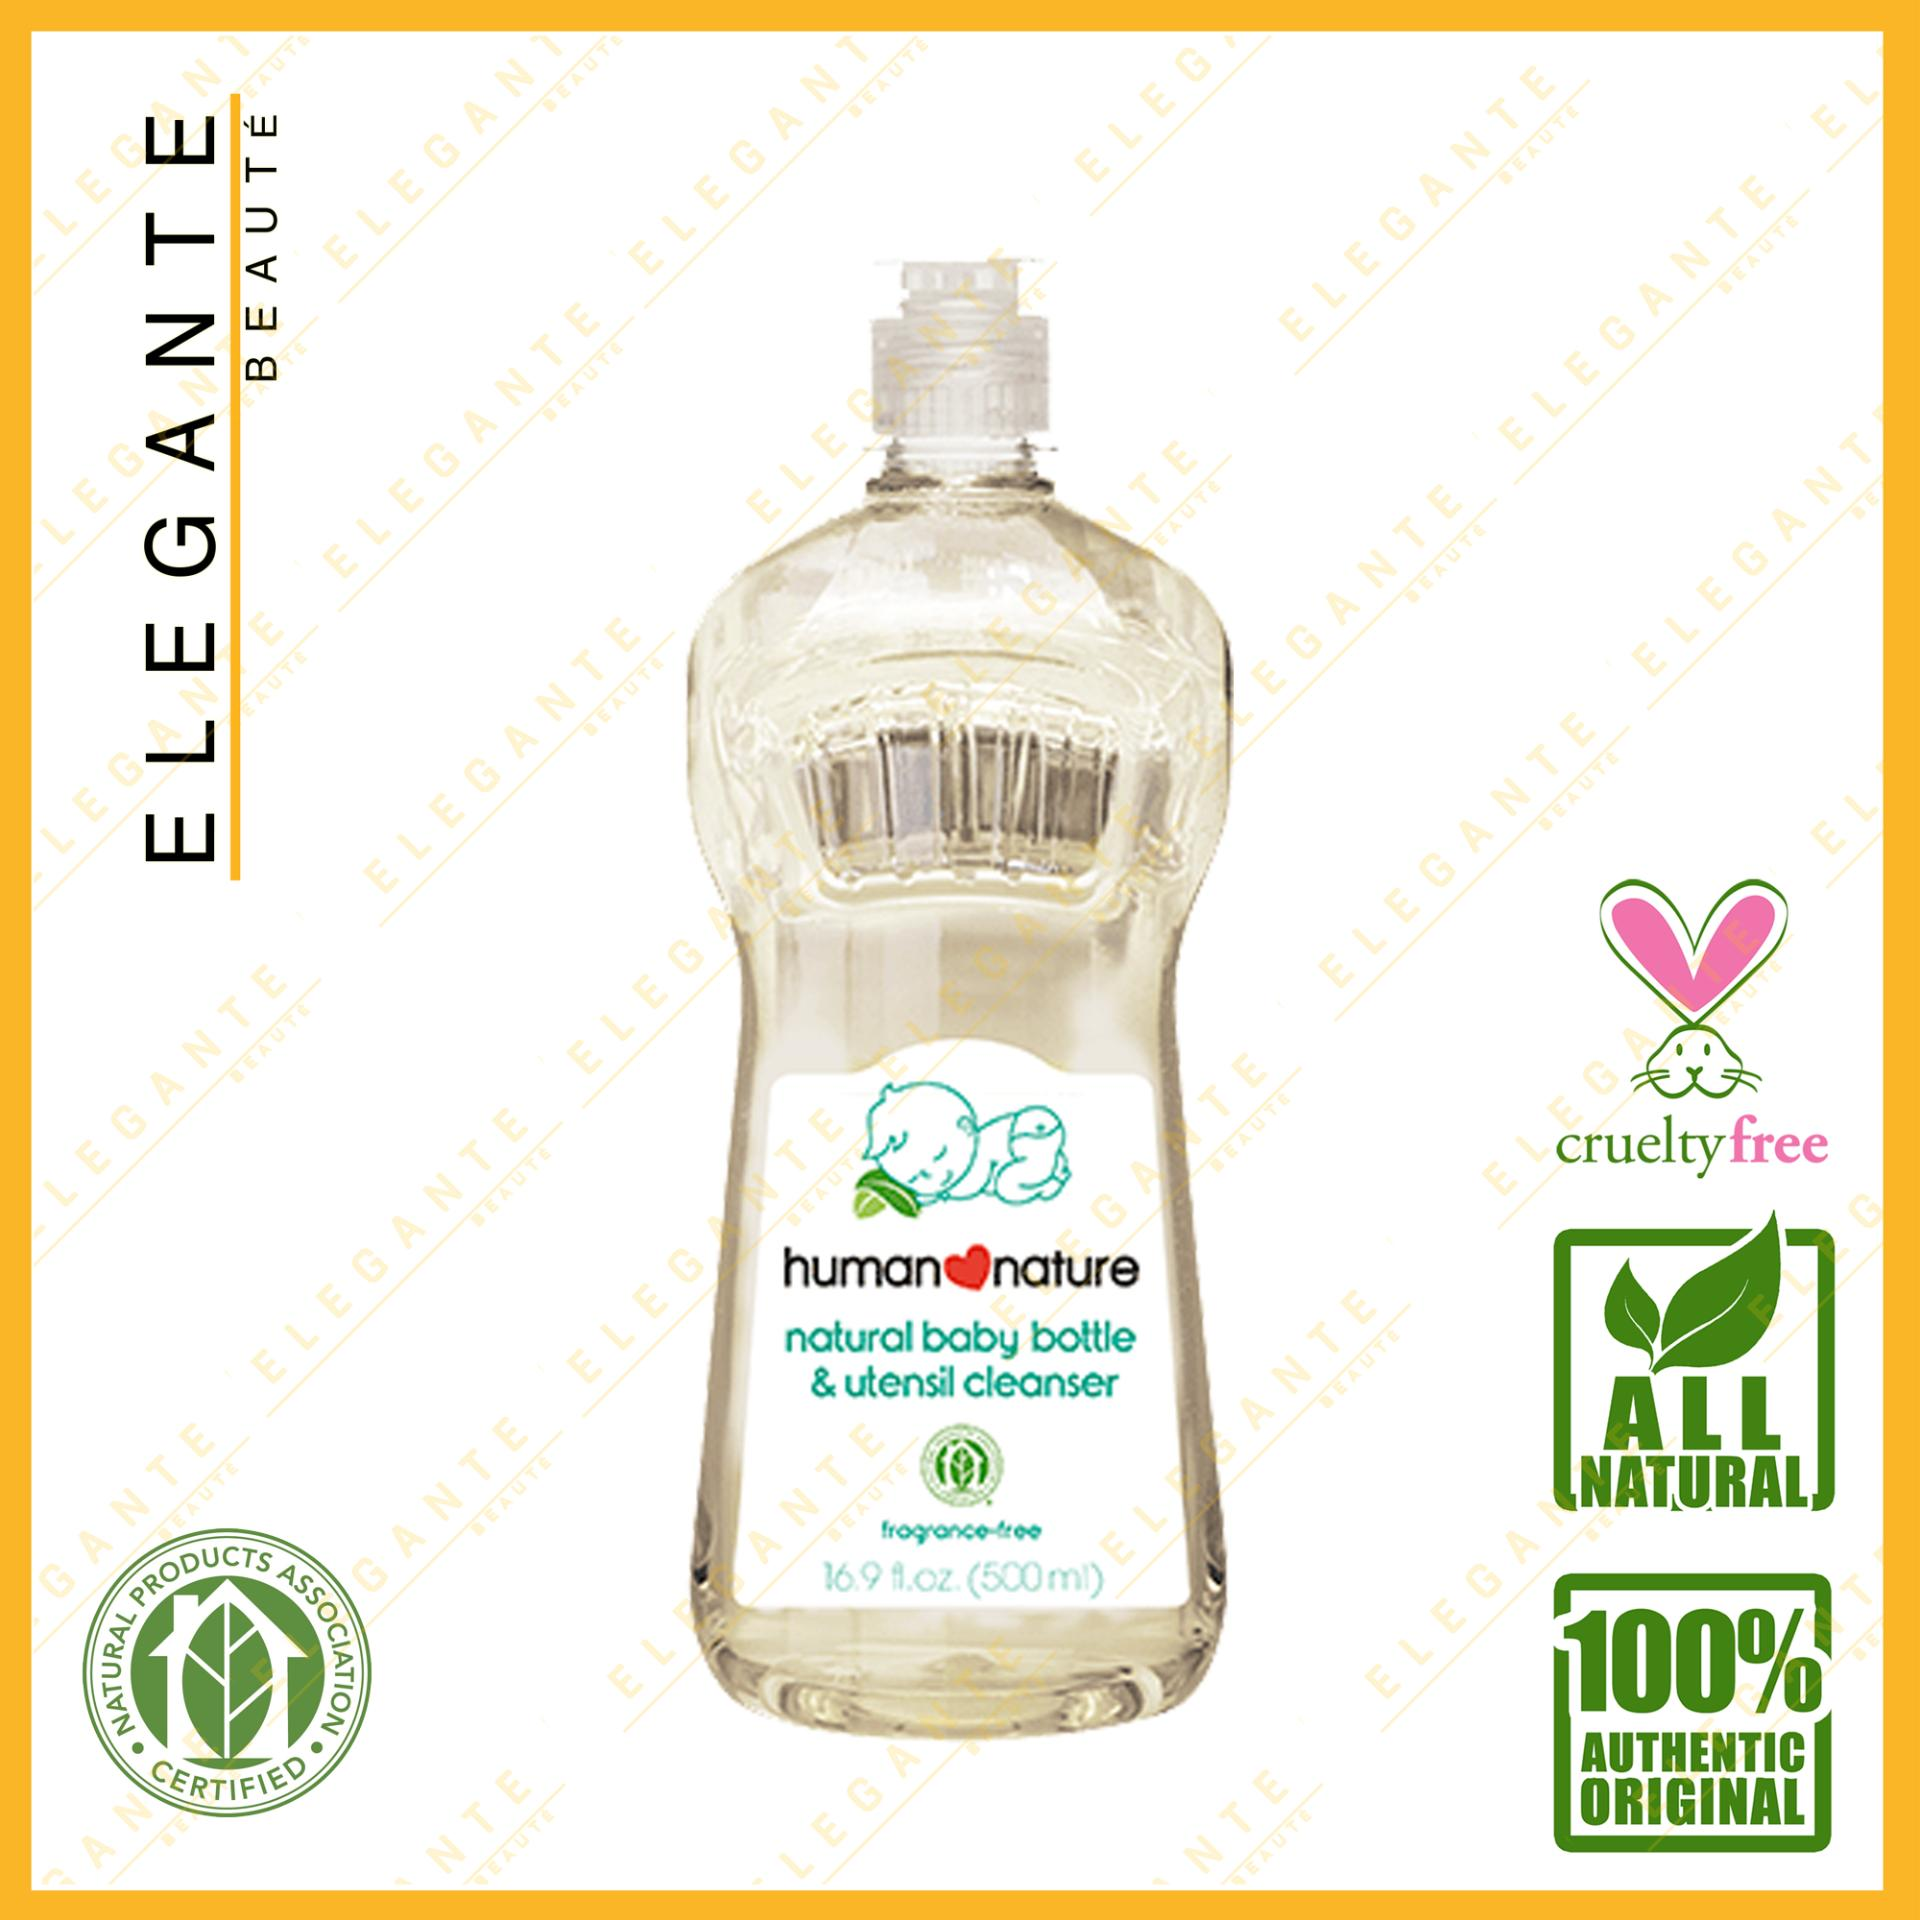 Elegante Beaute Human Nature Natural Baby Bottle And Utensil Cleaner 500ml By Elegante Beaute.